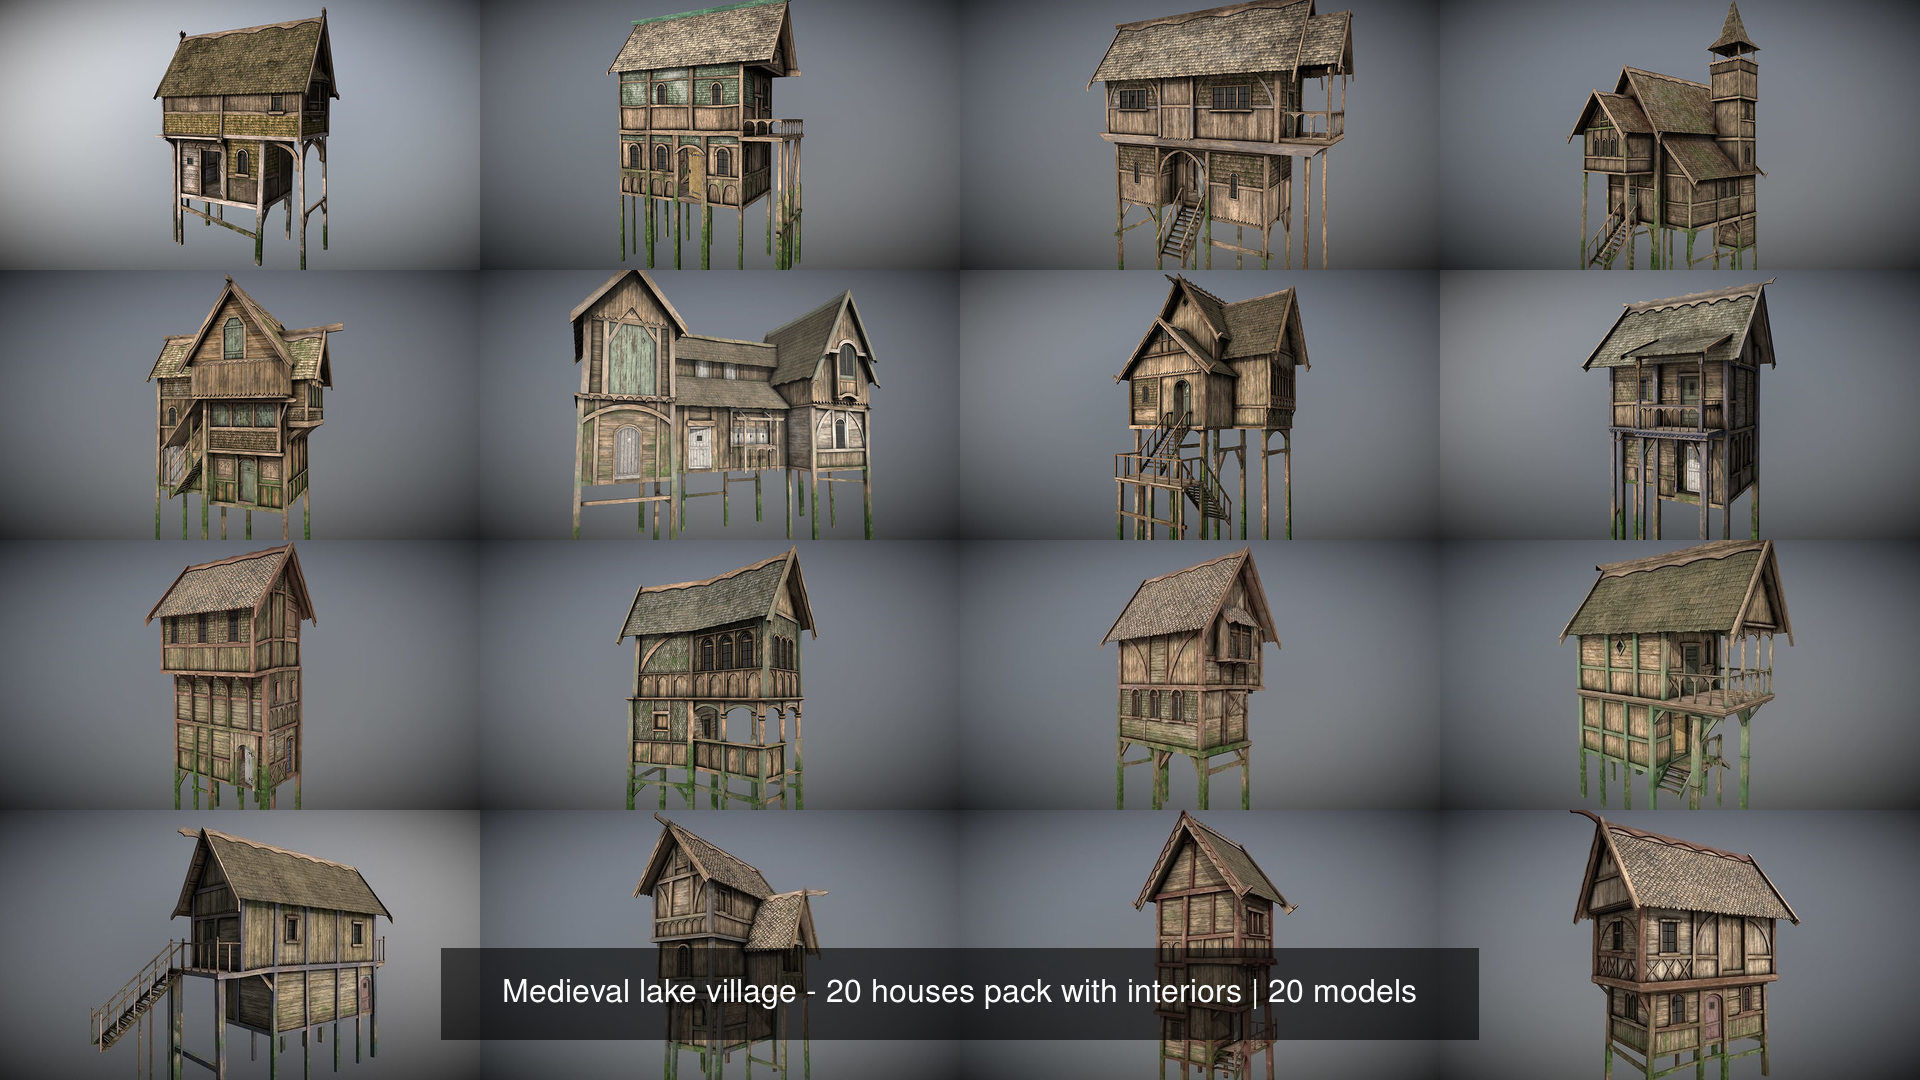 Medieval lake village - 20 houses pack with interiors